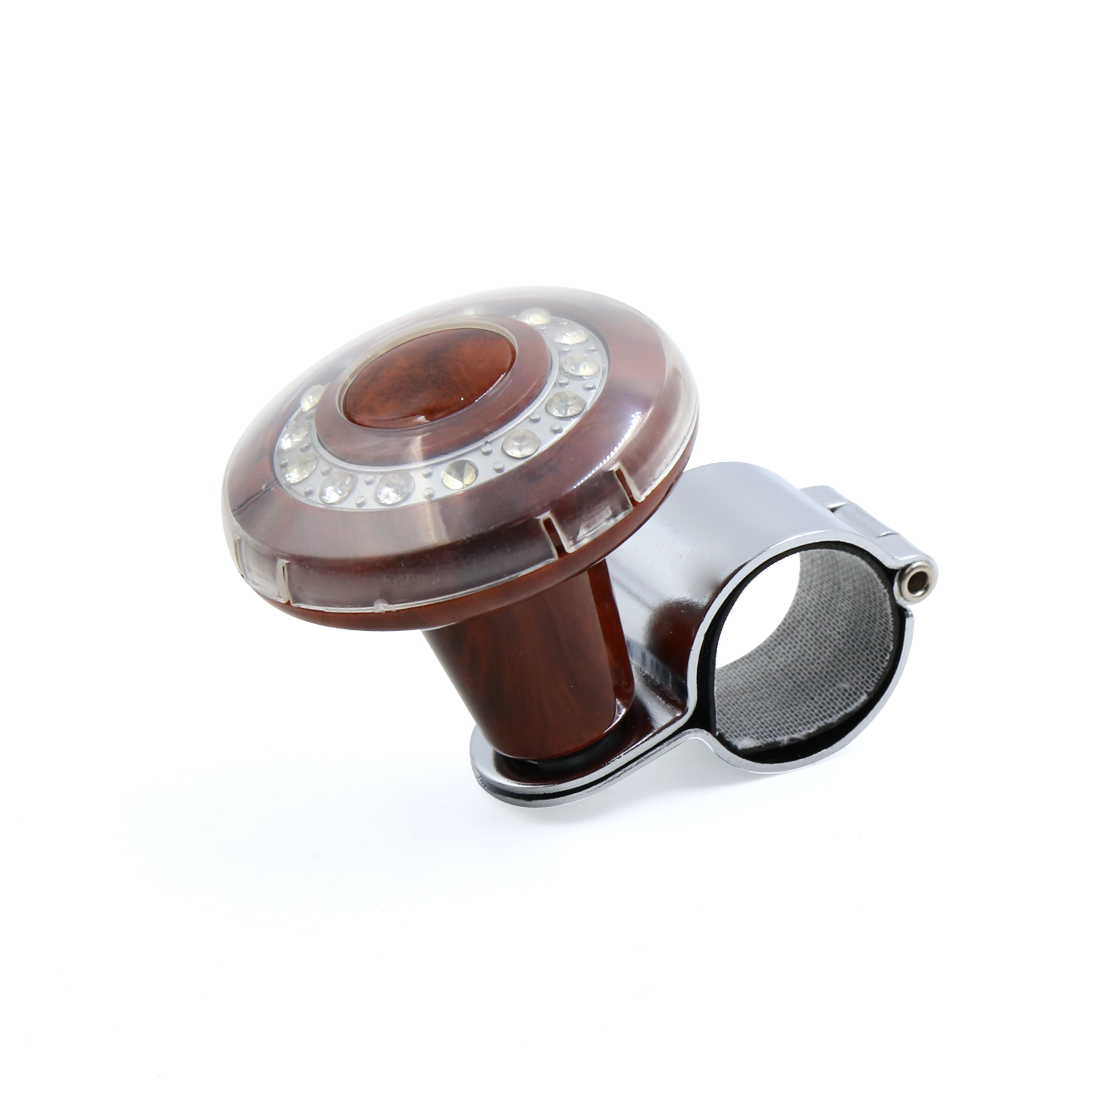 Rhinestone Decor Brown Power Handle Steering Wheel Spinner Knob Auxiliary Booster Grip for Car